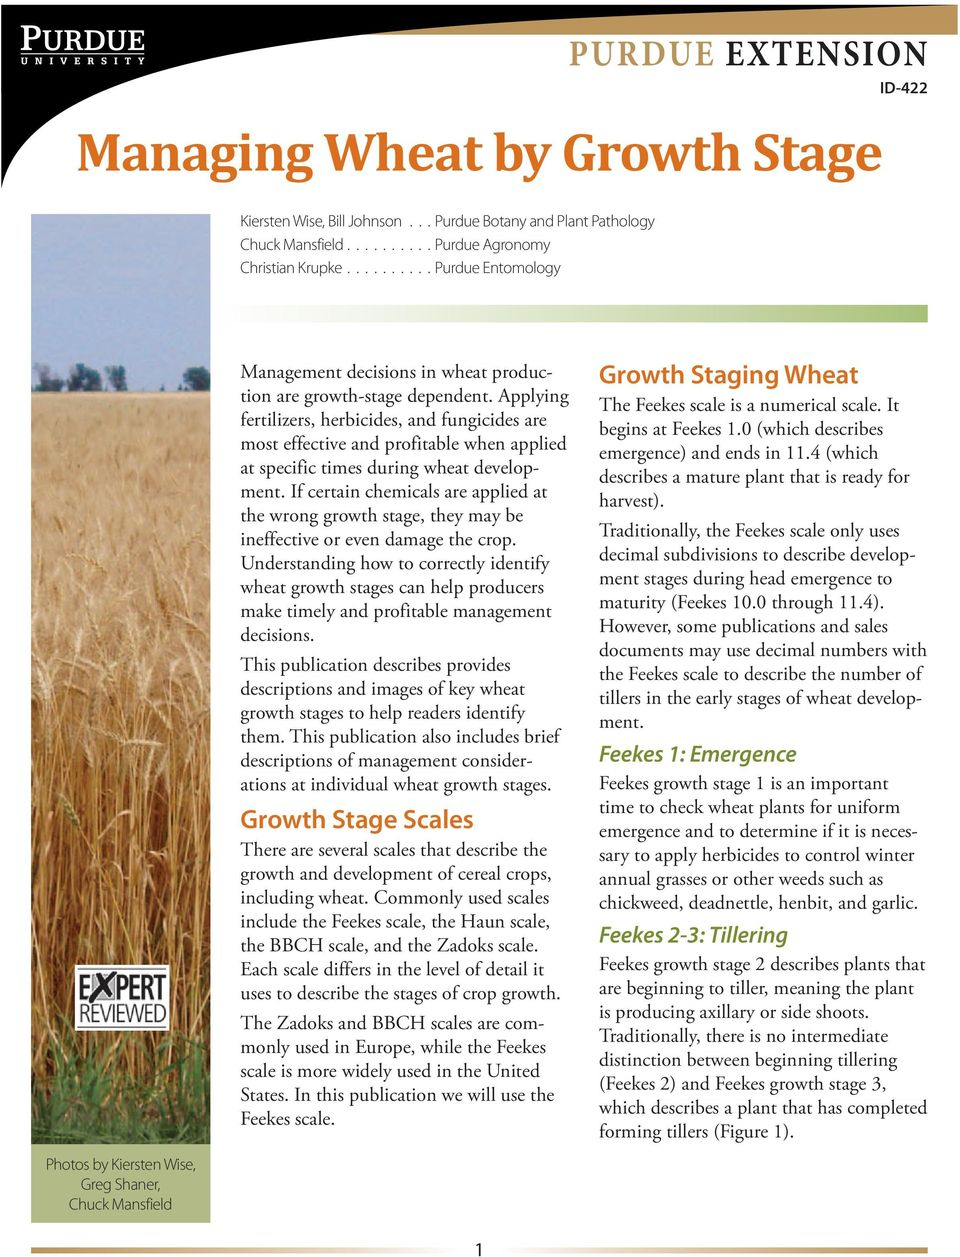 Applying fertilizers, herbicides, and fungicides are most effective and profitable when applied at specific times during wheat development.